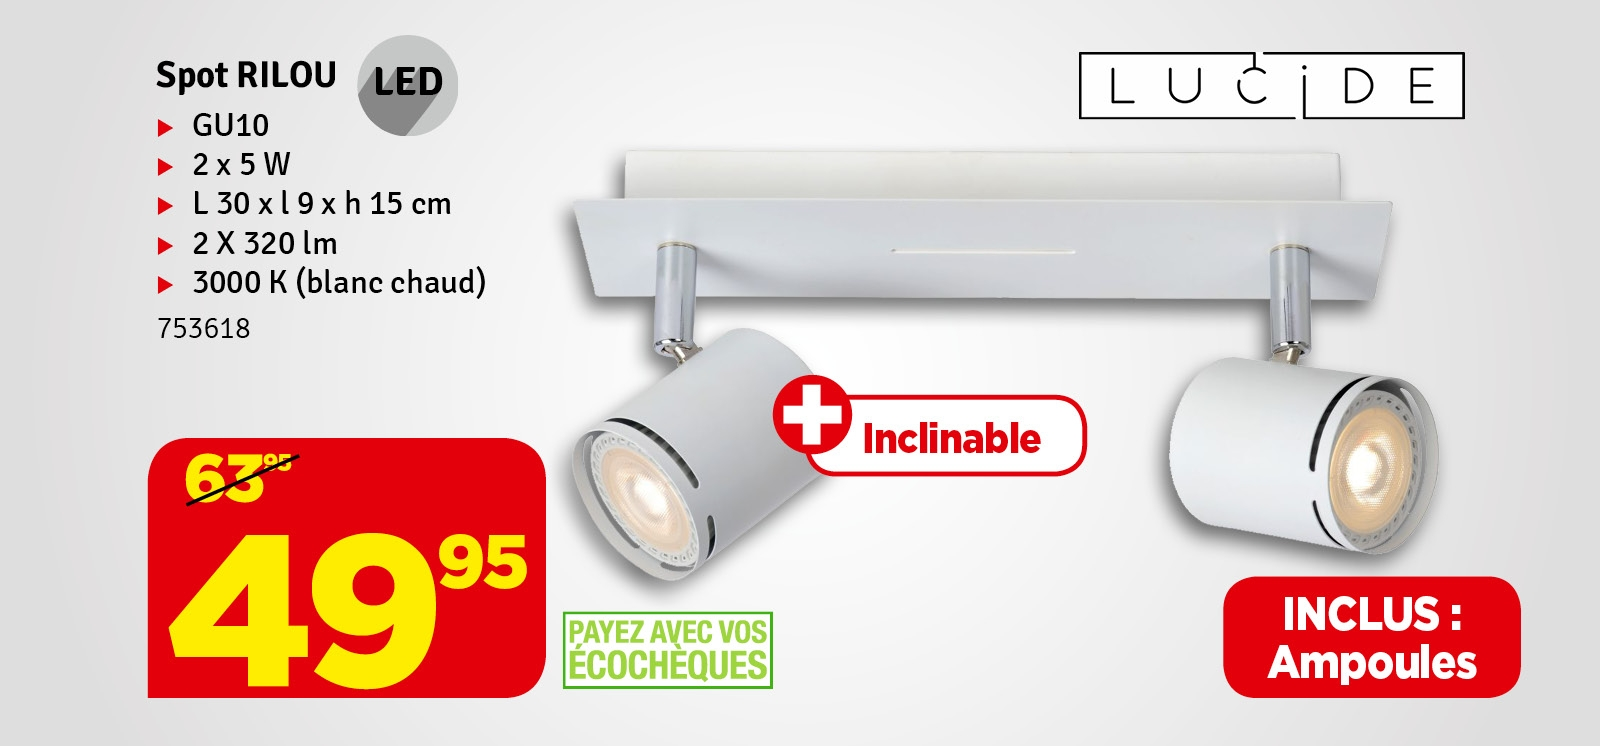 Promo - Spot LED Rilou GU10 4,5W 340 lm dimmable blanc chaud LUCIDE